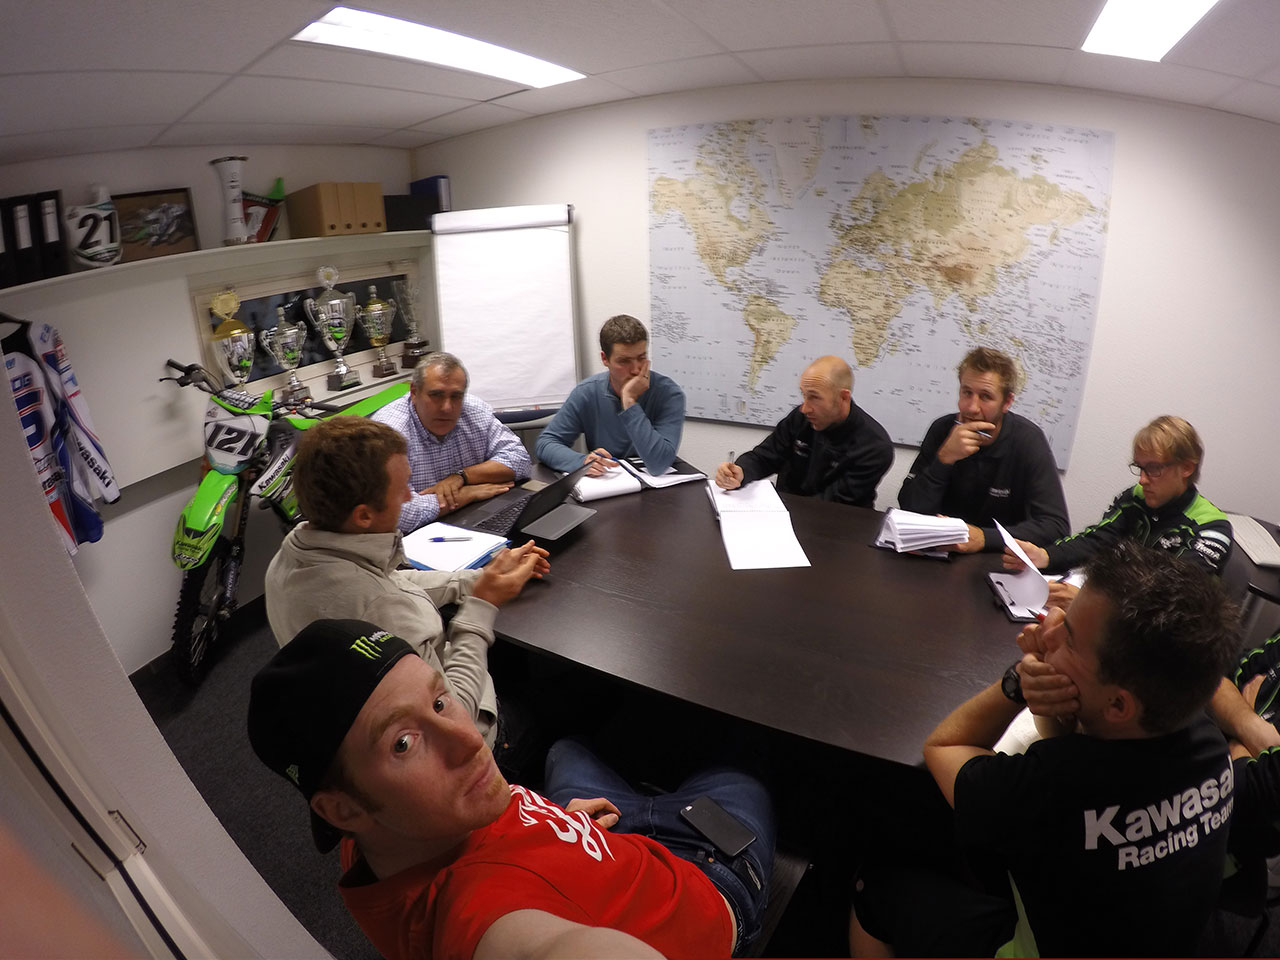 (The first thing I did when I arrived in Belgium was meet the team and have a quick meeting to discuss the plan for the week. Because I couldn't ride much, Tyla did most of the work for us.)